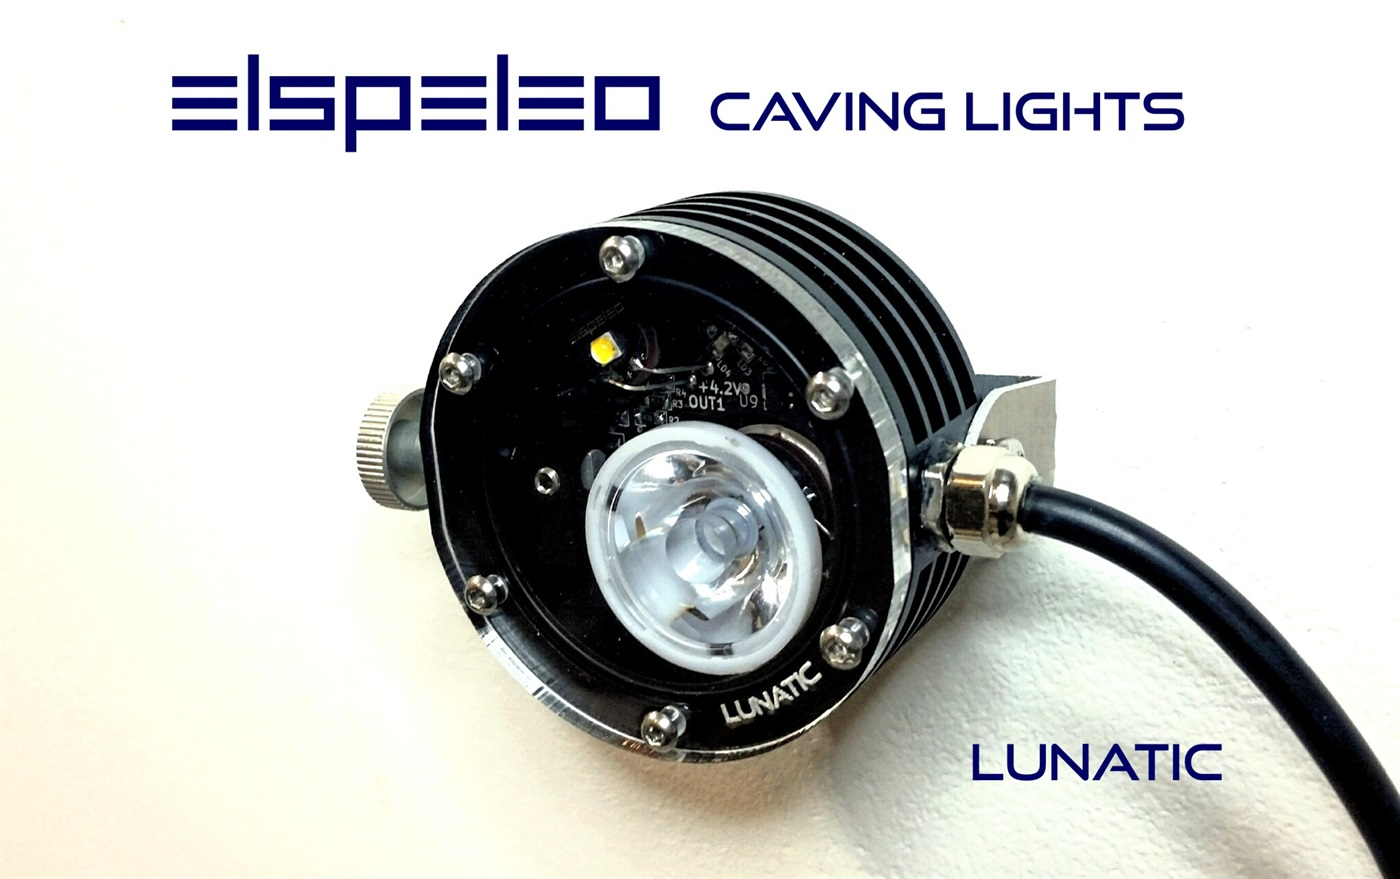 LUNATIC - tech diving / caving light